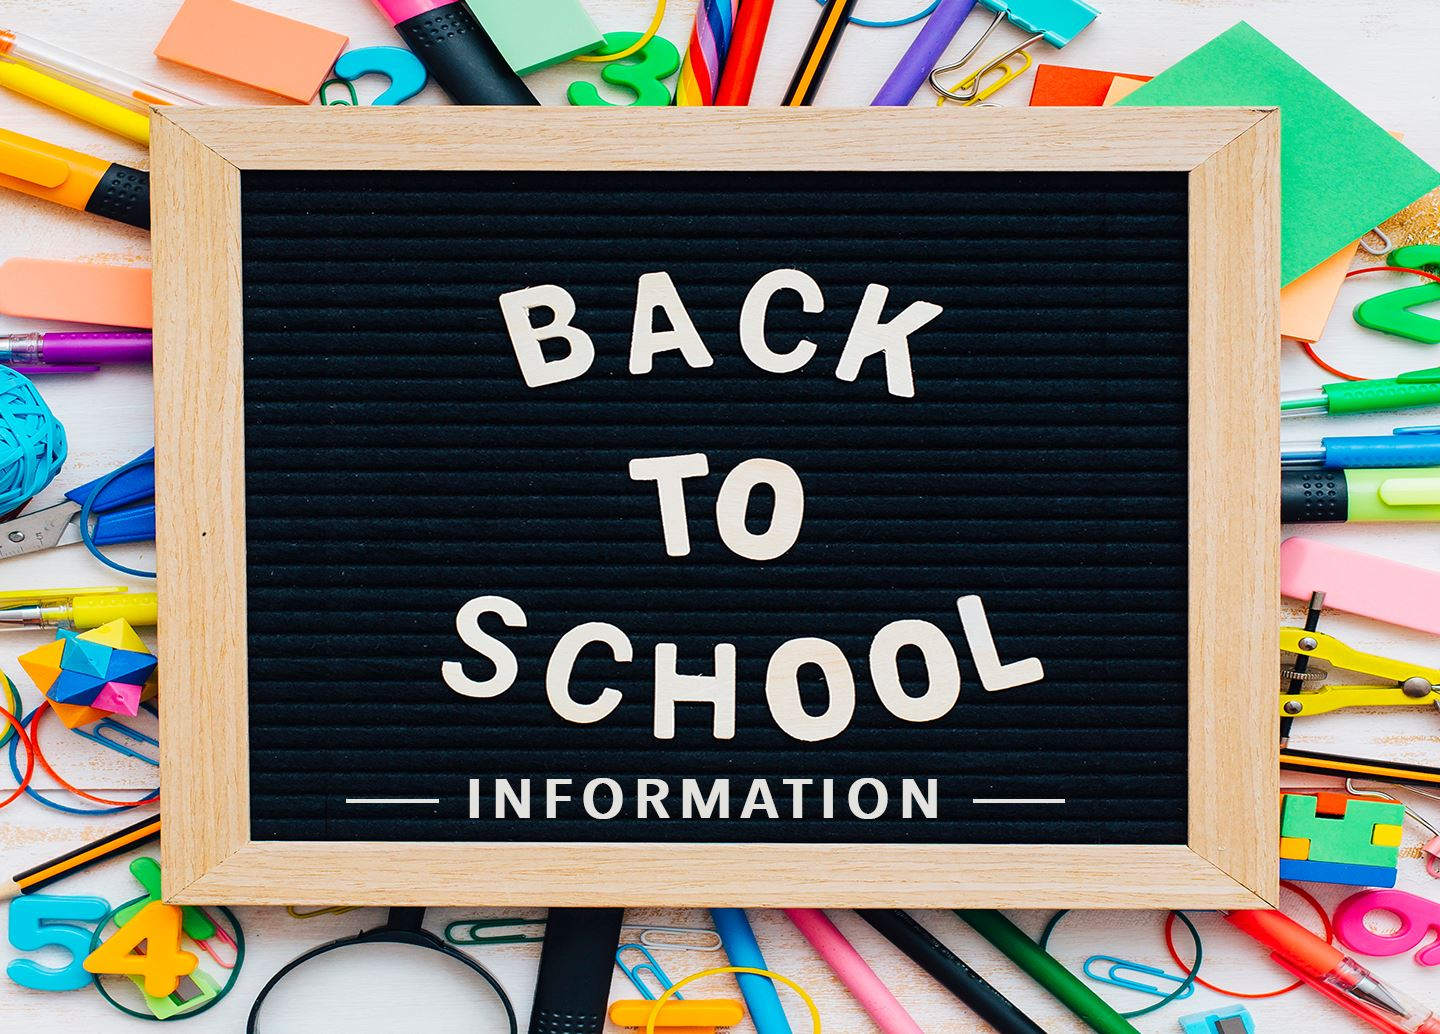 Red Oak Independent School District / Homepage